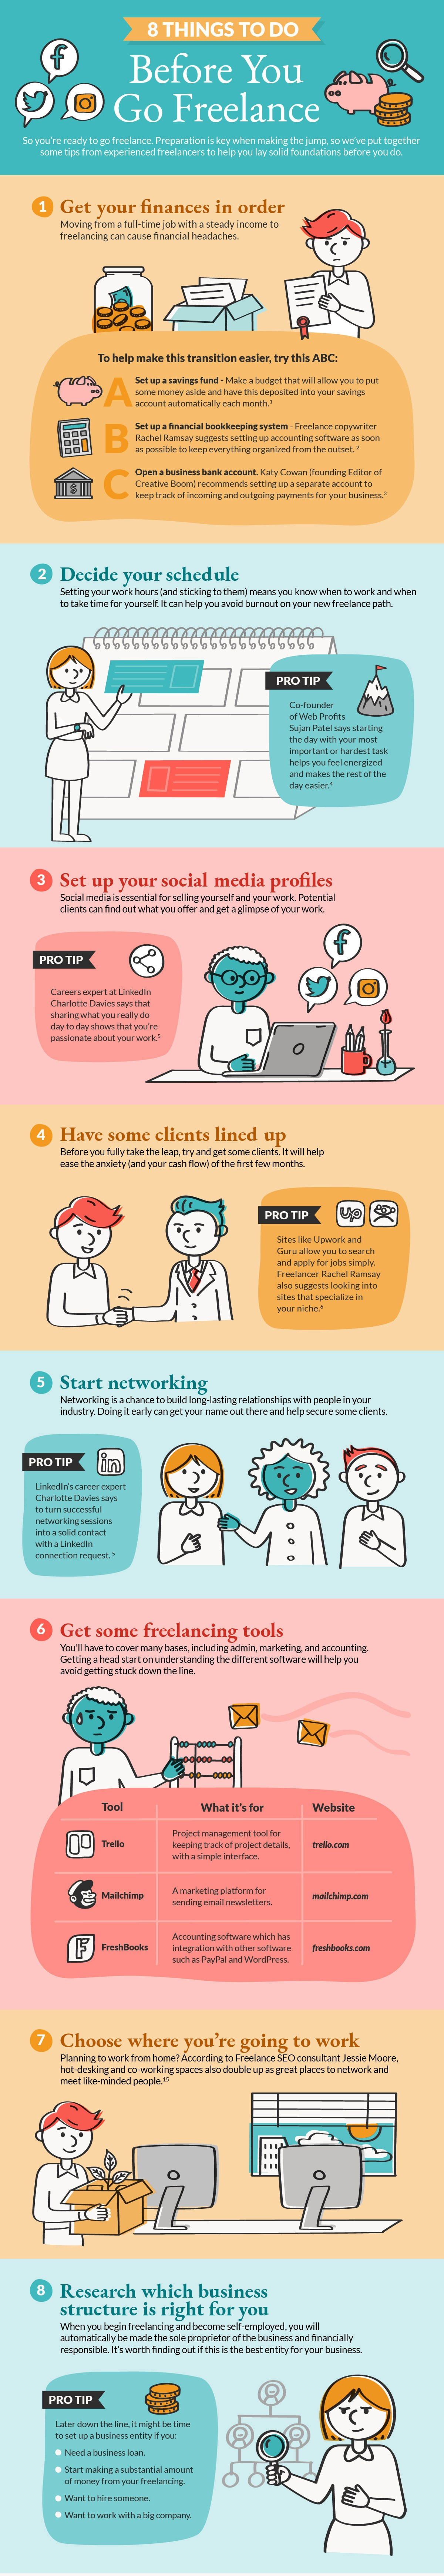 Before you go freelance infographic checklist.